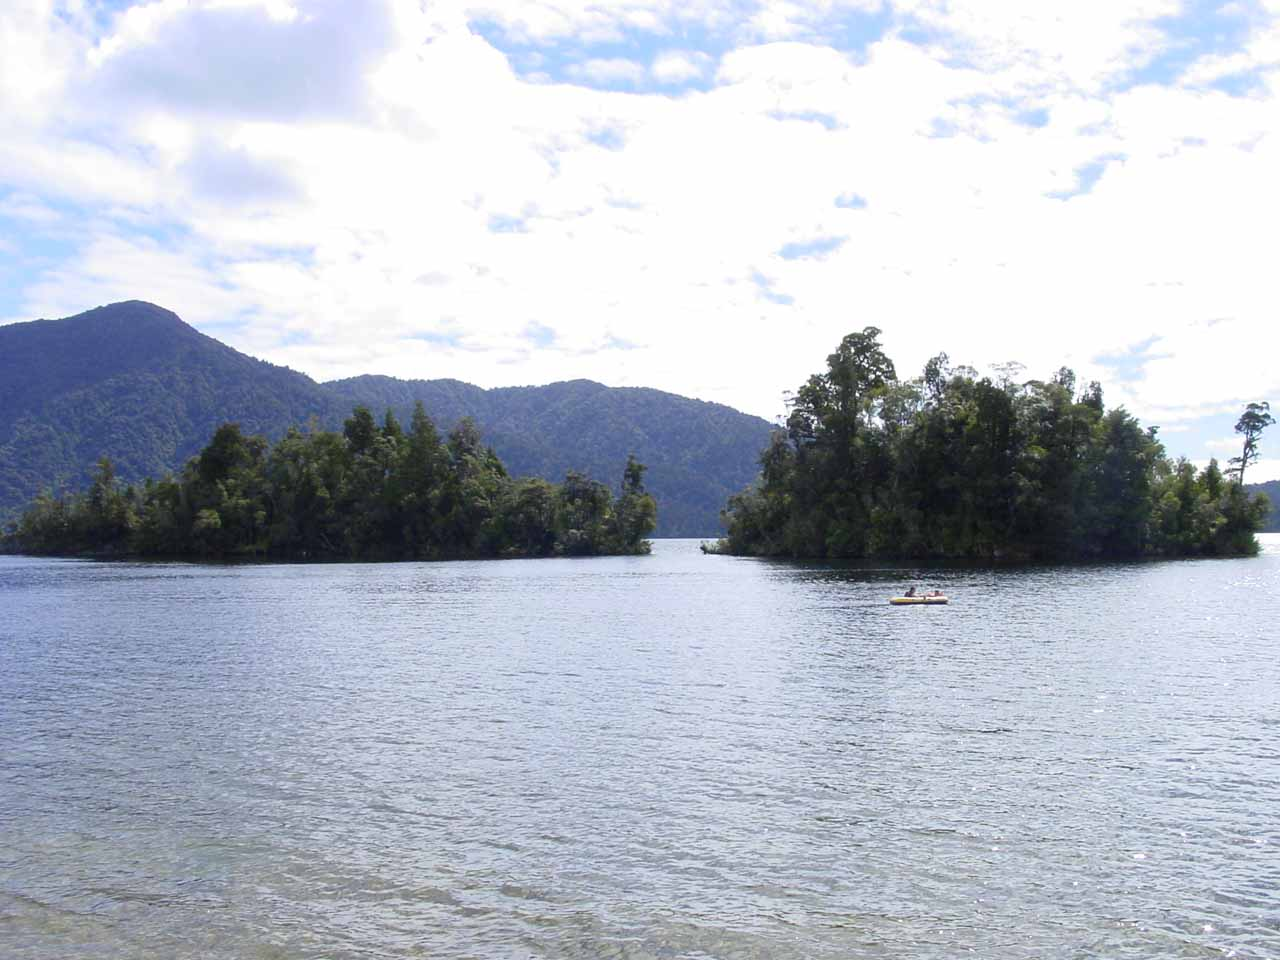 On the same day we visited Arthur's Pass and the Devil's Punchbowl Falls, we wound down the afternoon relaxing along the shores of Lake Kaniere before dining in Hokitika